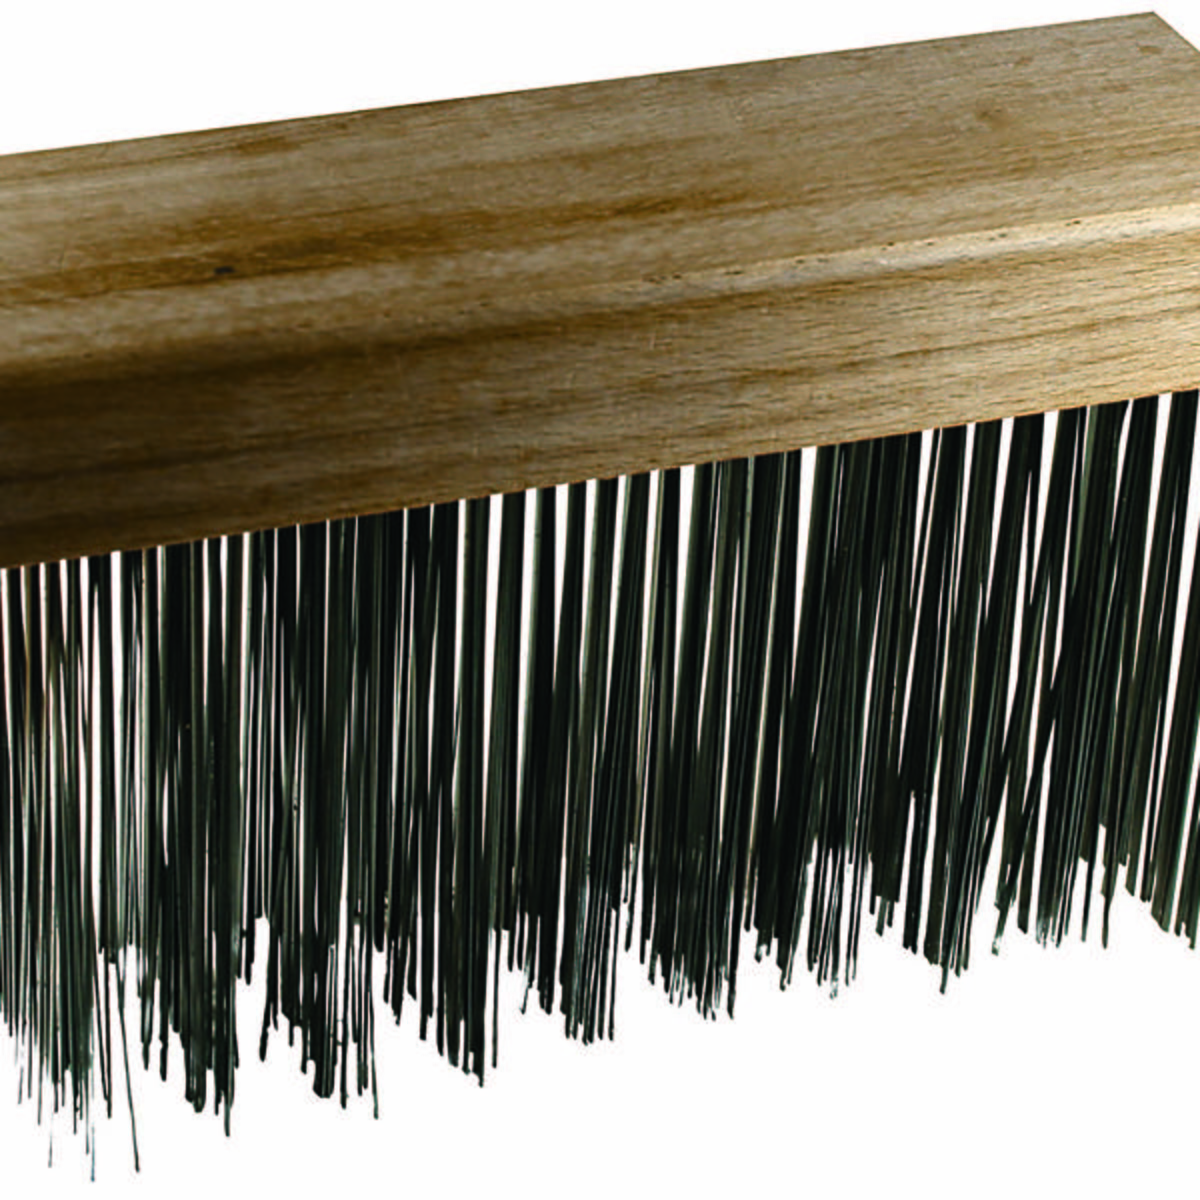 "Flat Wire Block Brush, Straight Back 5 x 10 Rows, CS Wire, 1-1/4"" trim"